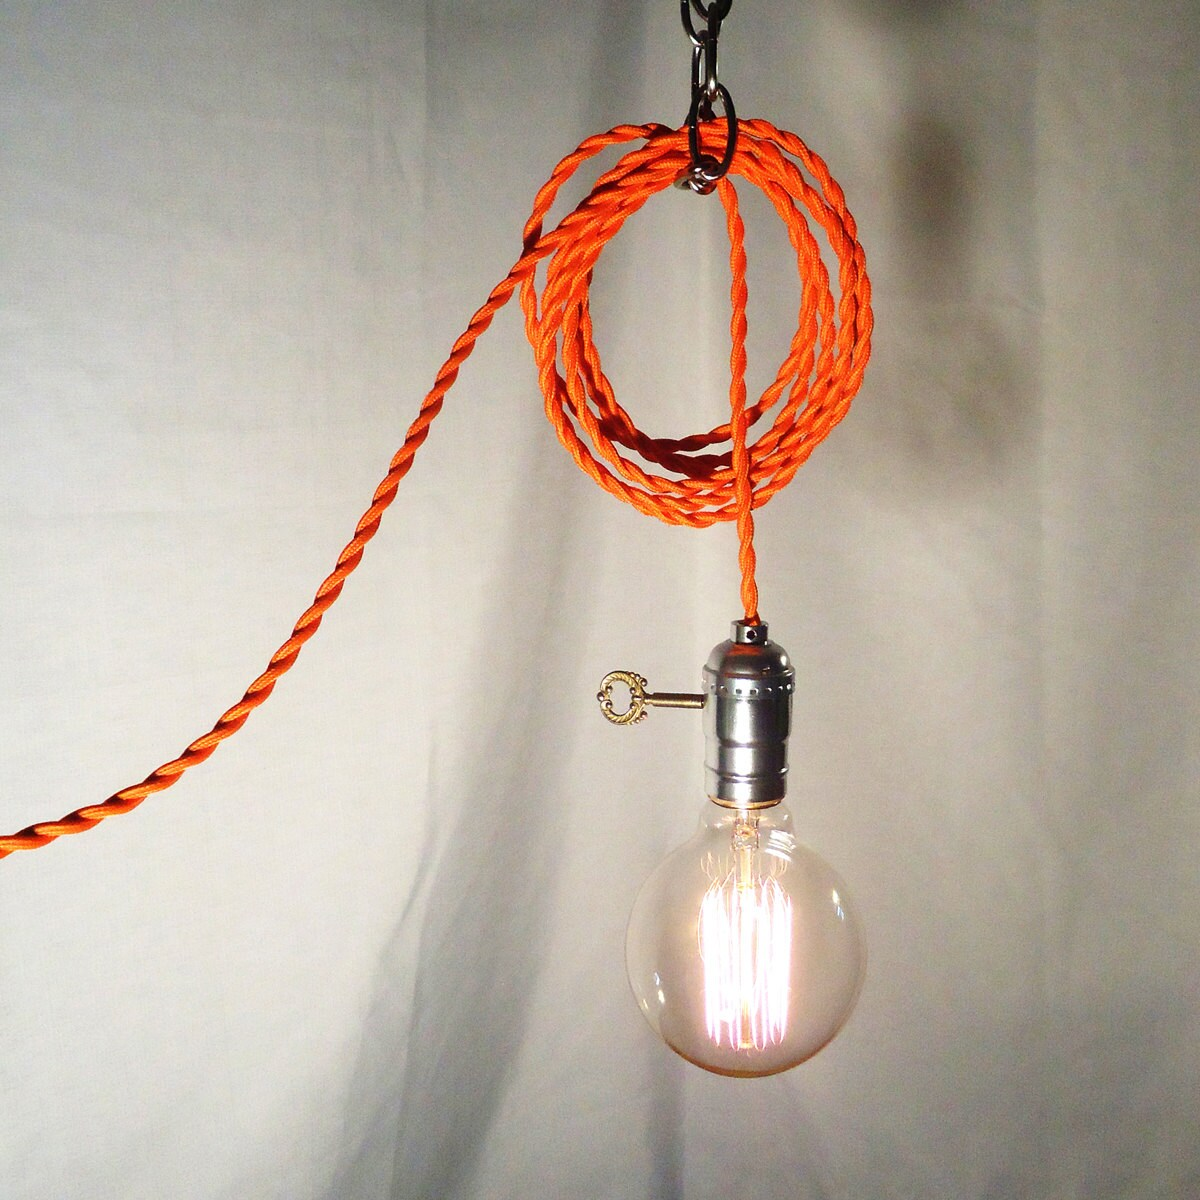 hanging lamp twisted orange cord exposed edison bulb. Black Bedroom Furniture Sets. Home Design Ideas